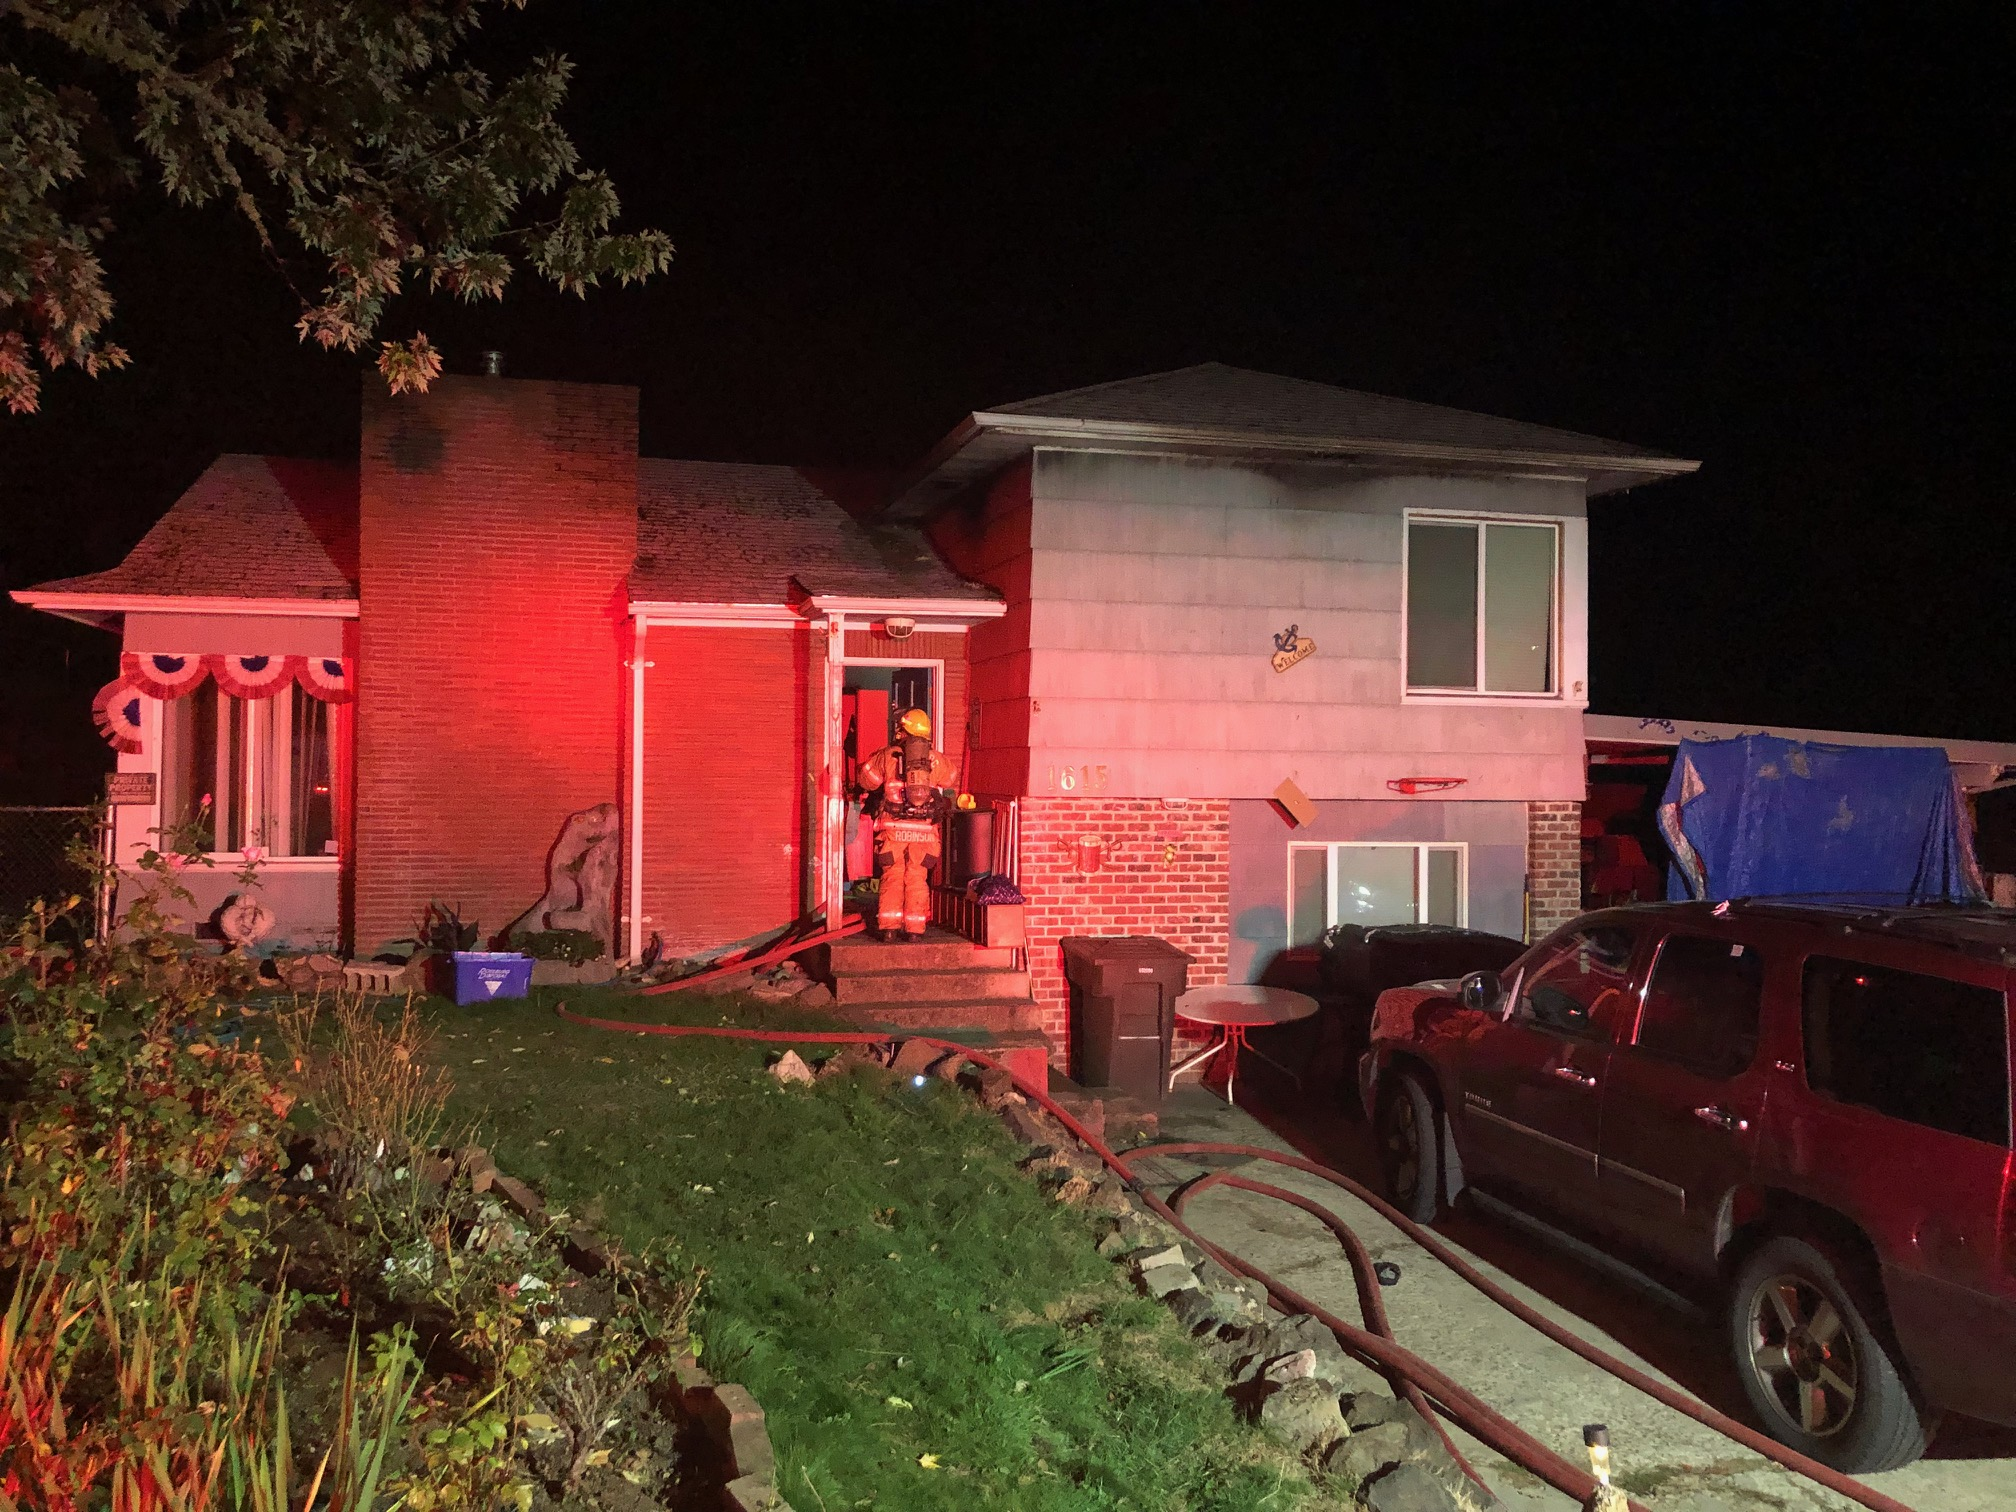 Residential Structure Fire - 1615 NW Utah Street - 10-7-19 (Photo) featured image